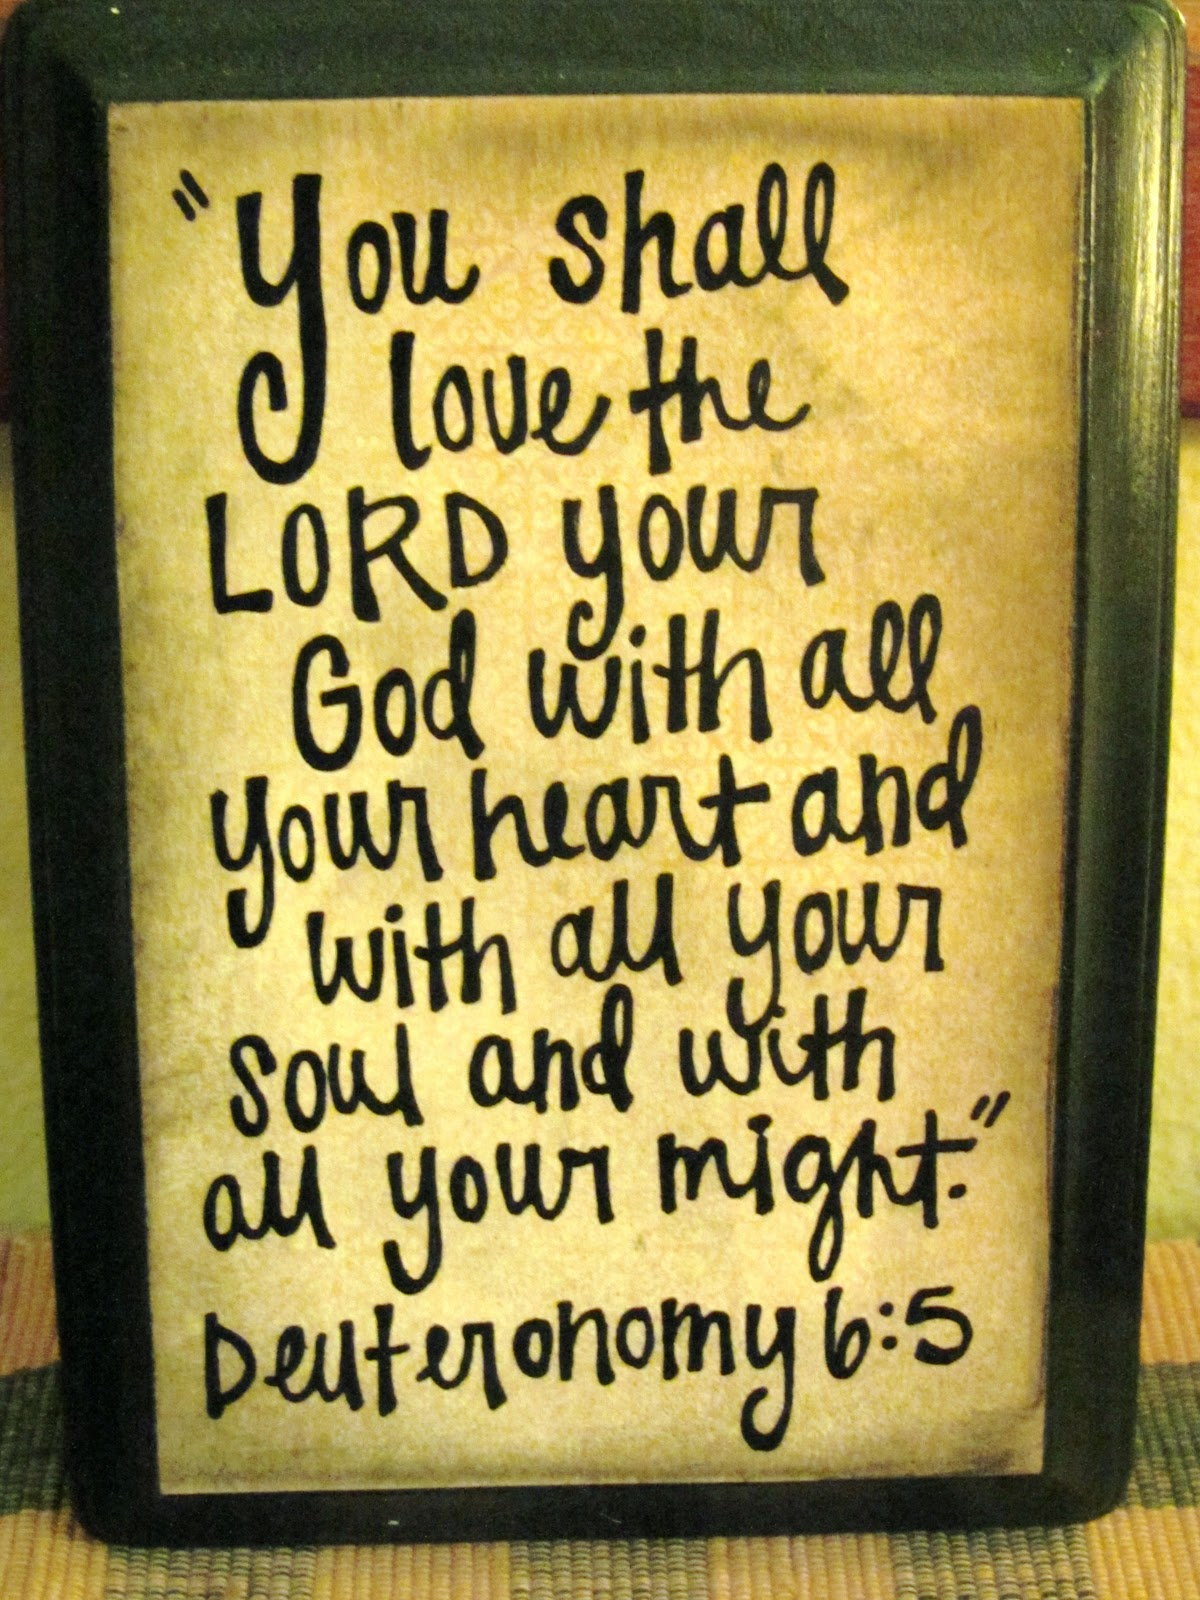 Willow Way: Keep These Commandments On Your Hearts